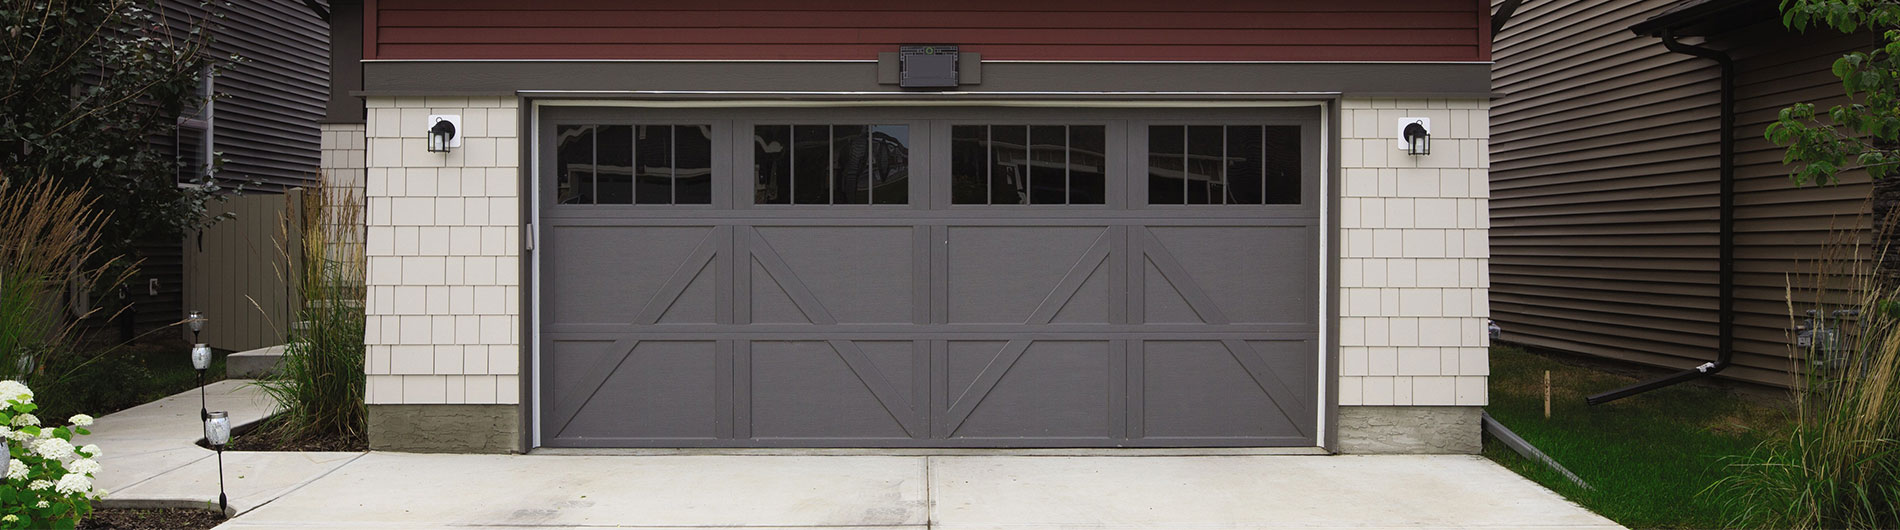 Carriage house steel garage doors 9700 9700 ch garage door rubansaba